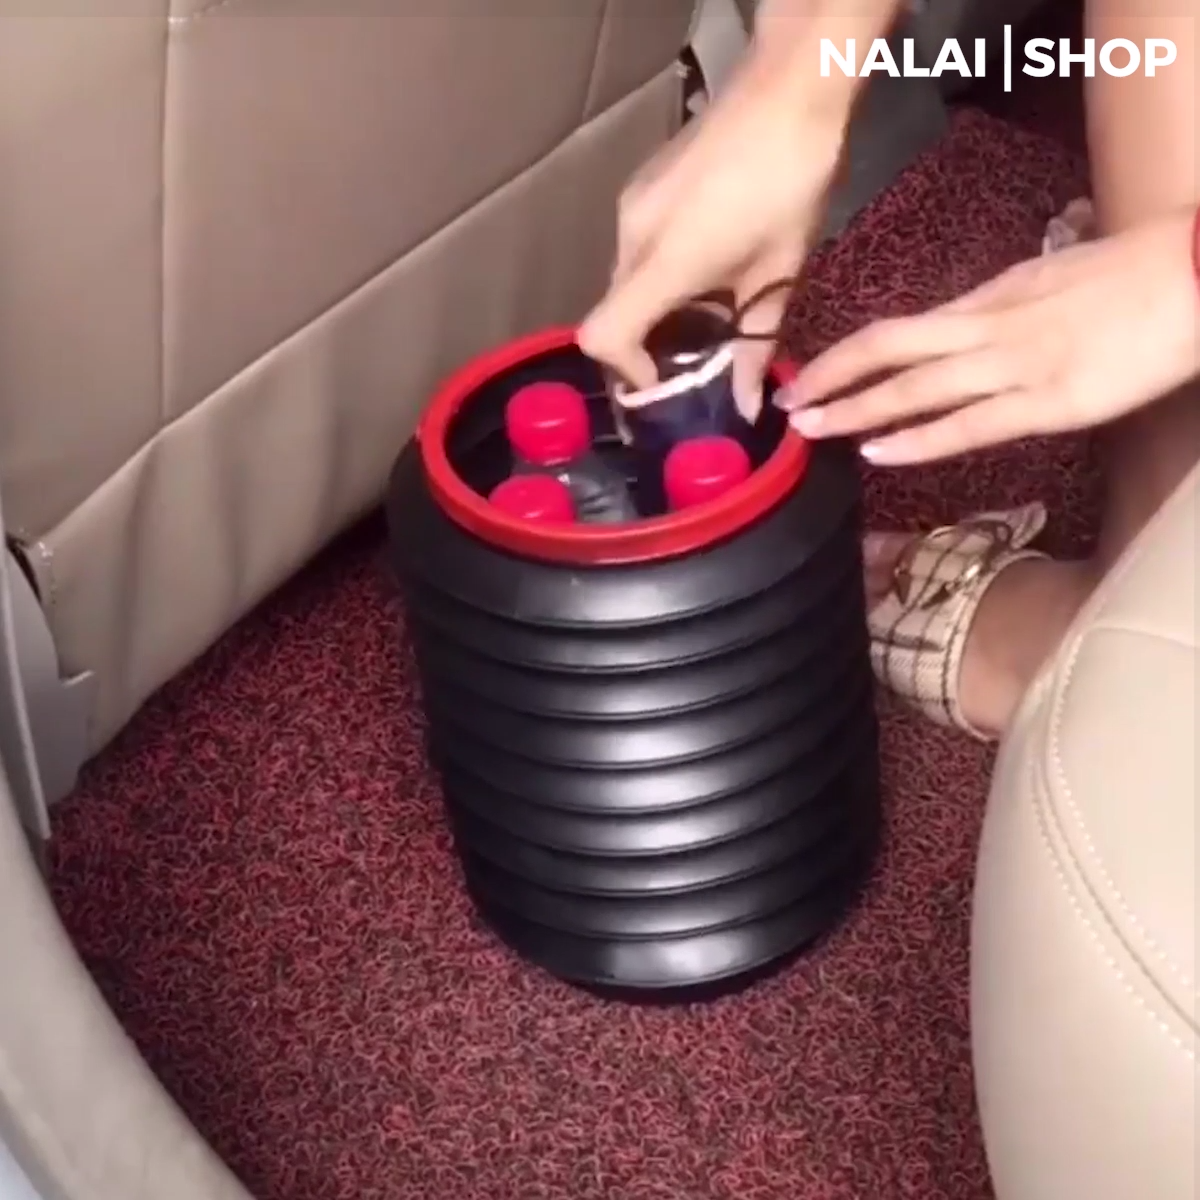 This Car Folding Bin can be stretch at your will to be portable storage. With high-quality plastic that is thick and tough. It is half-folded that the mouth of the barrel can be stretched at any angle. And with sufficient durable materials, folding and stretching can be up to tens of thousands of times. Get it today!